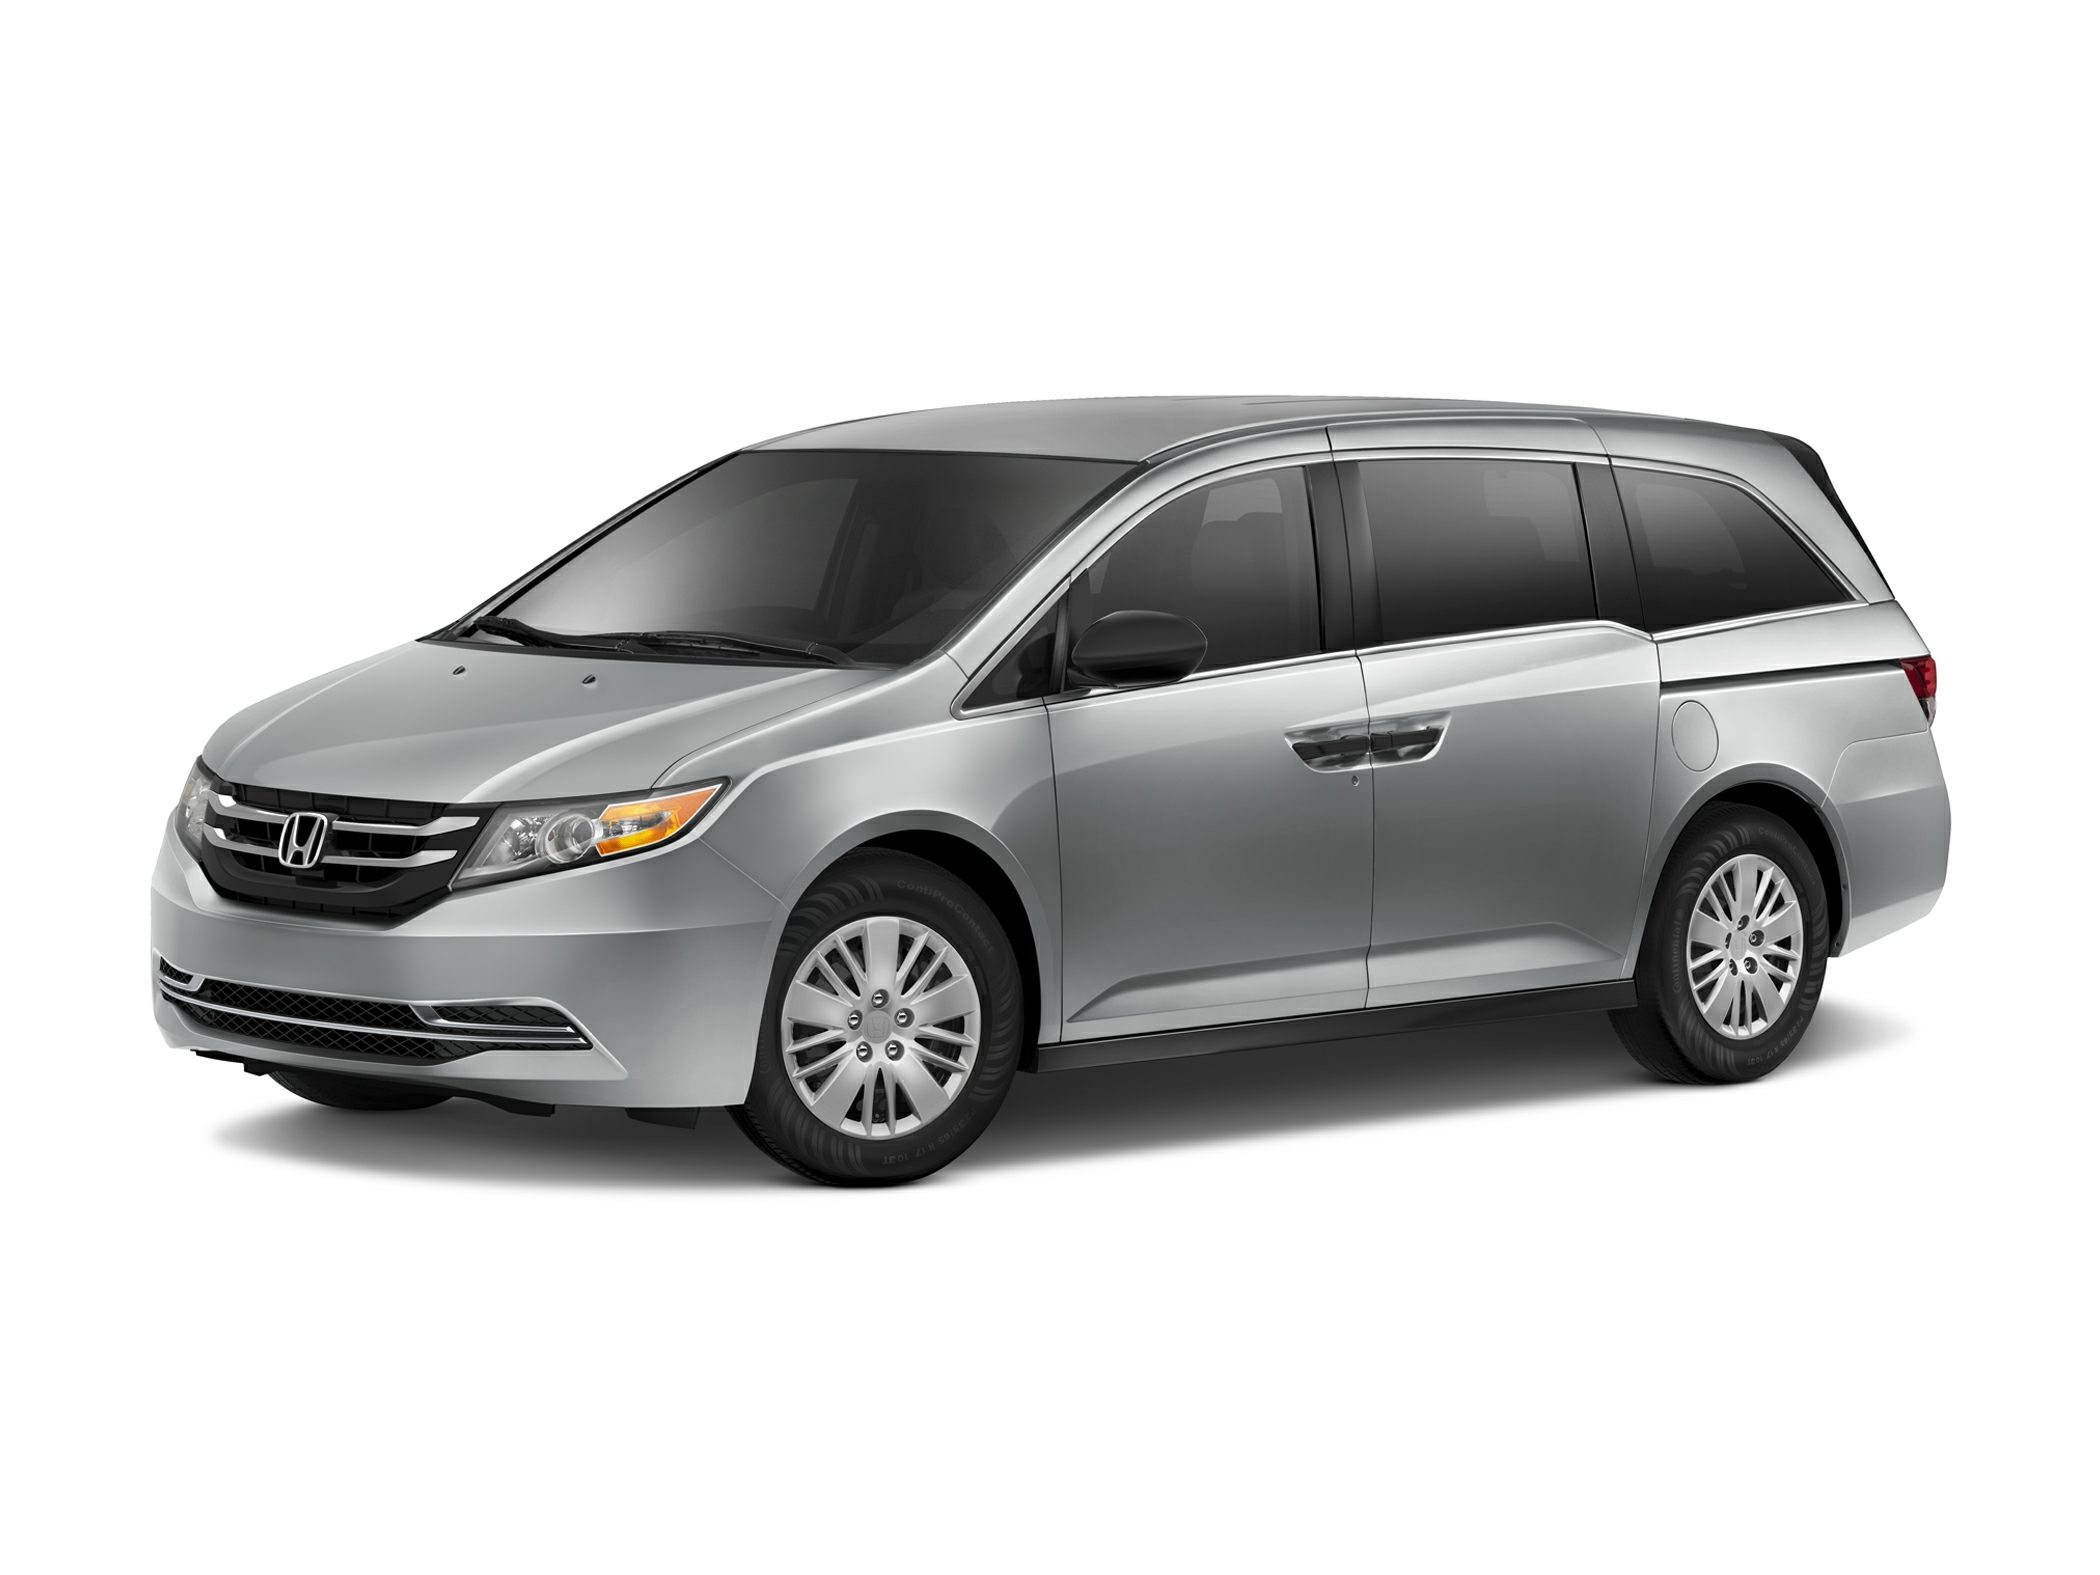 new 2016 honda odyssey price photos reviews safety ratings 2014 honda odyssey invoice price